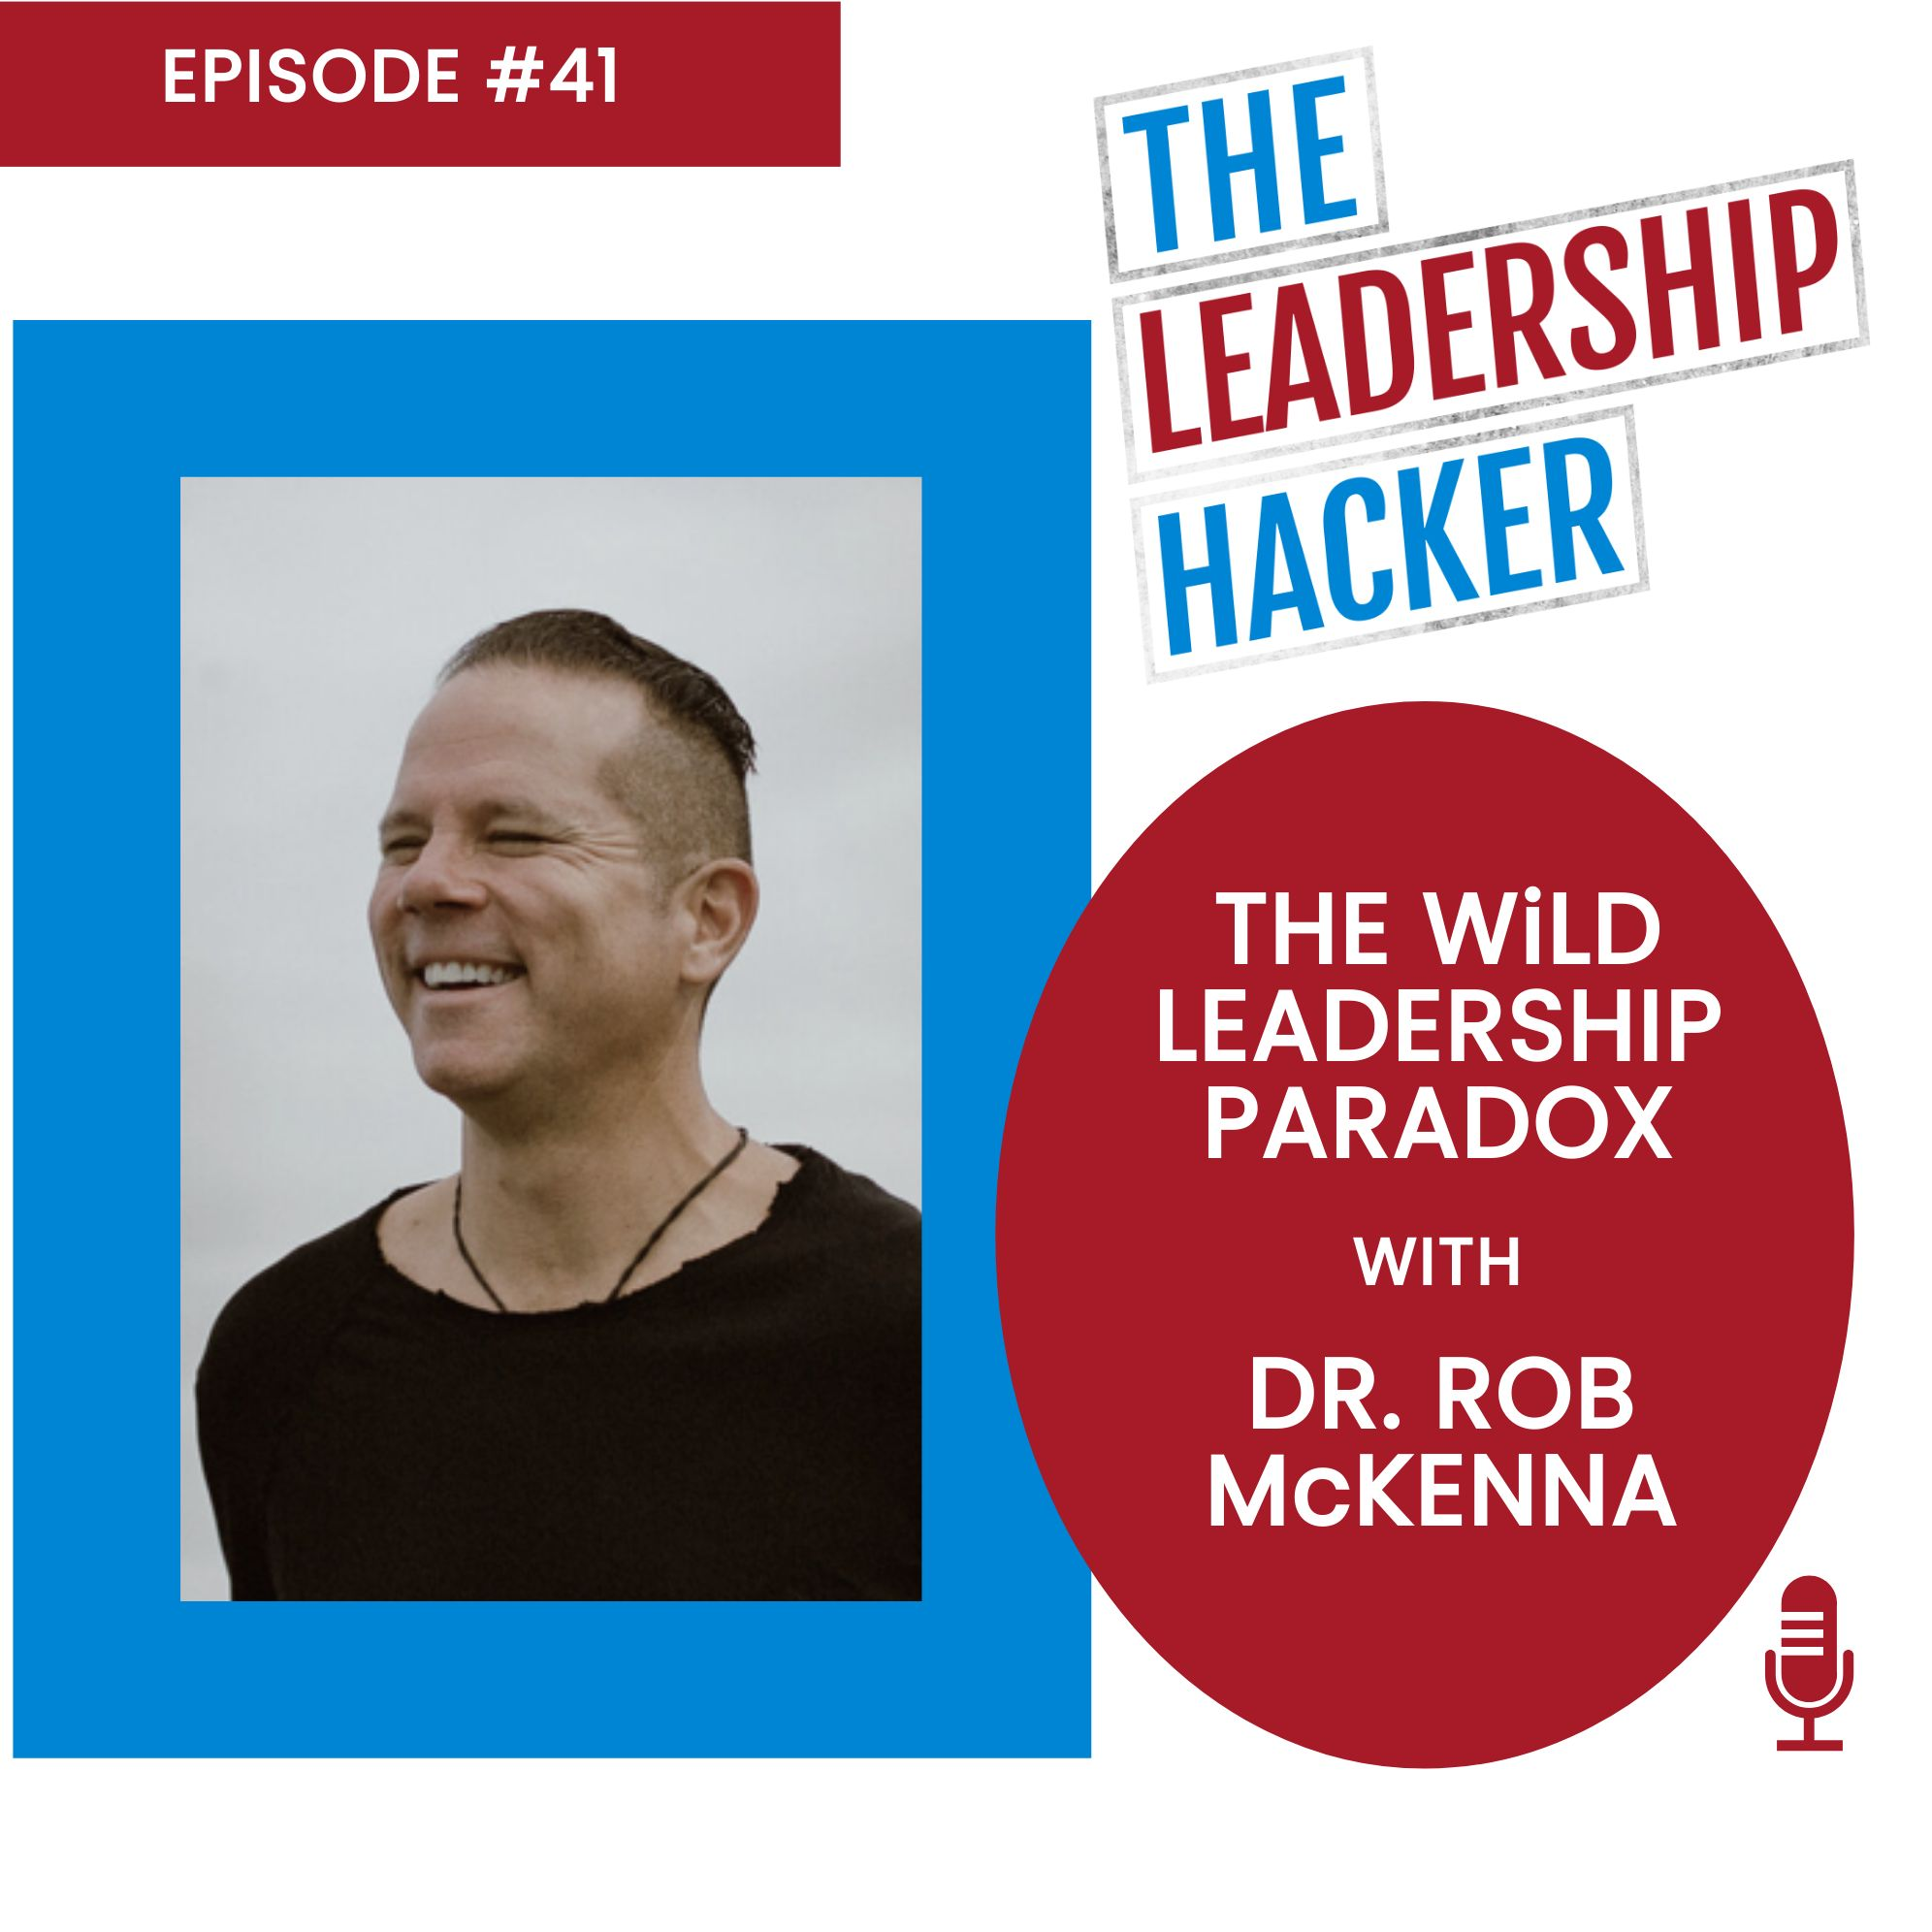 The WiLD Leadership Paradox with Dr. Rob McKenna